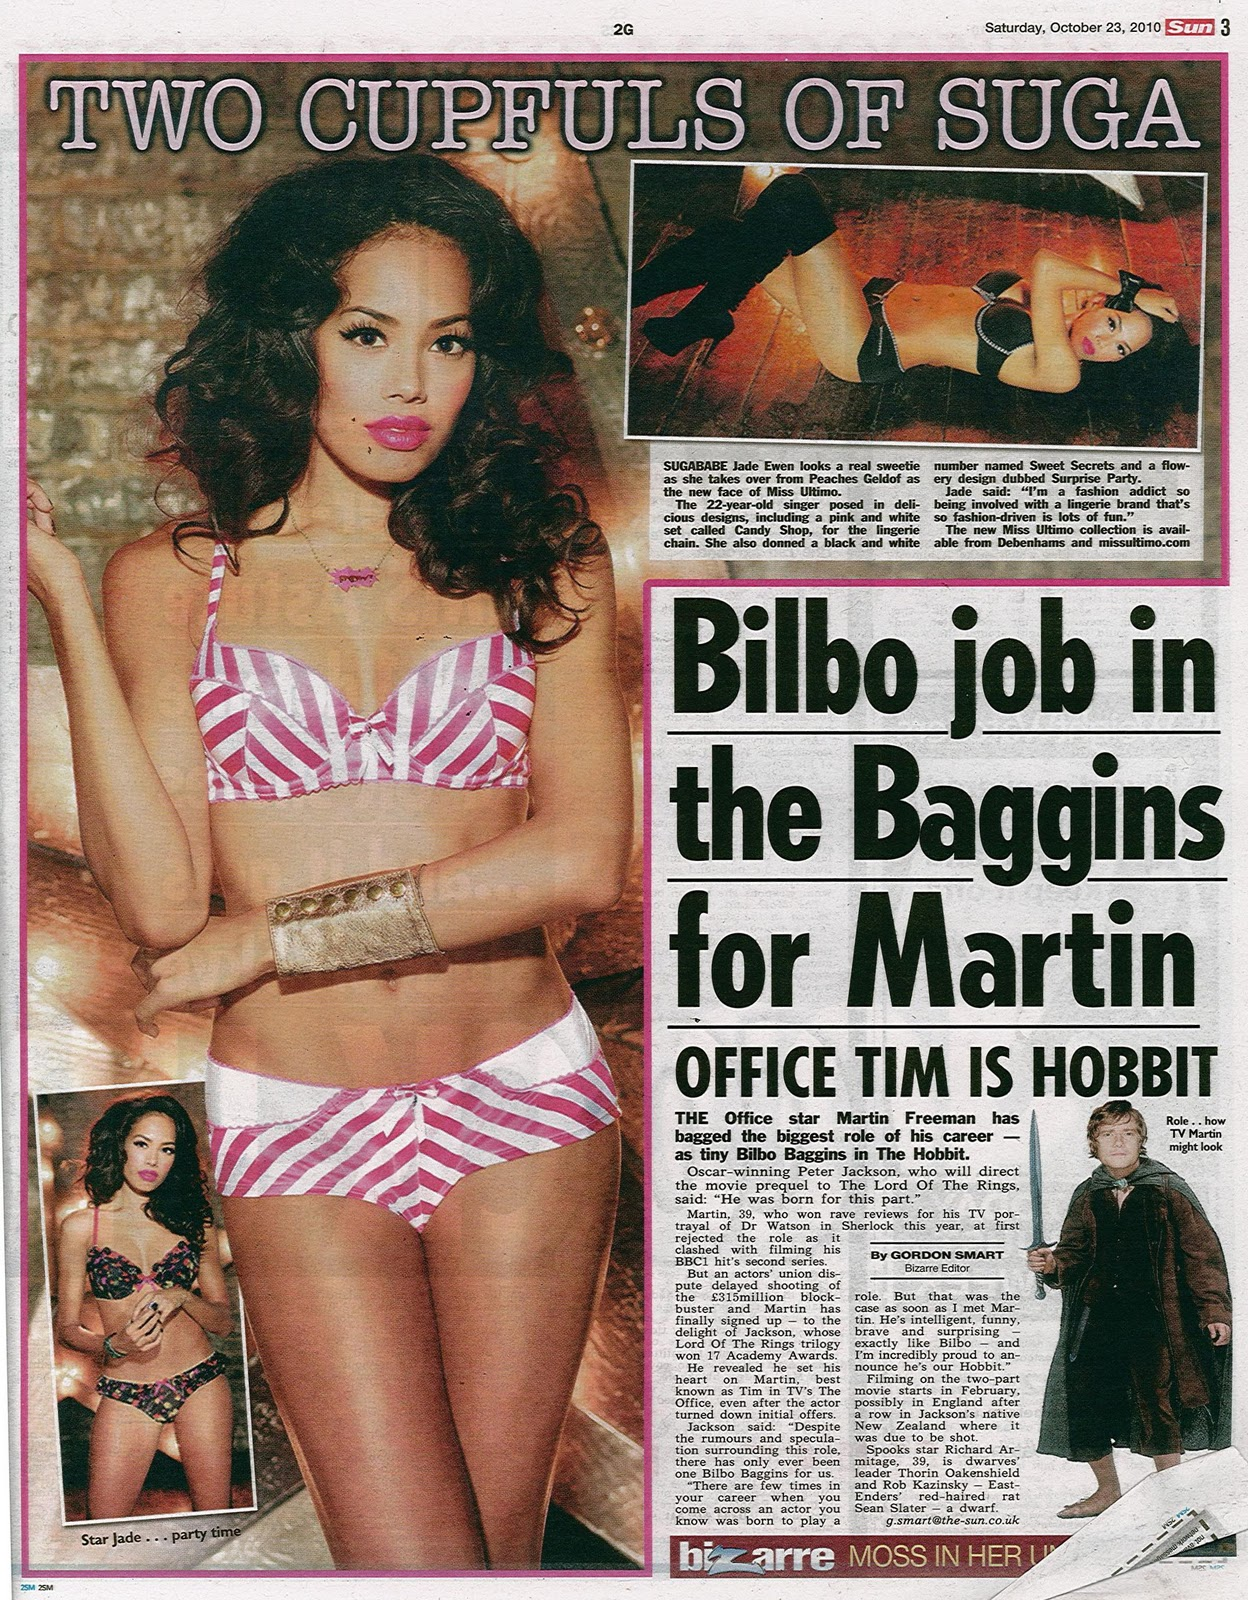 London Sun Page 3 Girls http://jadeewenandthesugababes.blogspot.com/2010/10/jade-ewen-in-sun-page-3-for-miss-ultimo.html